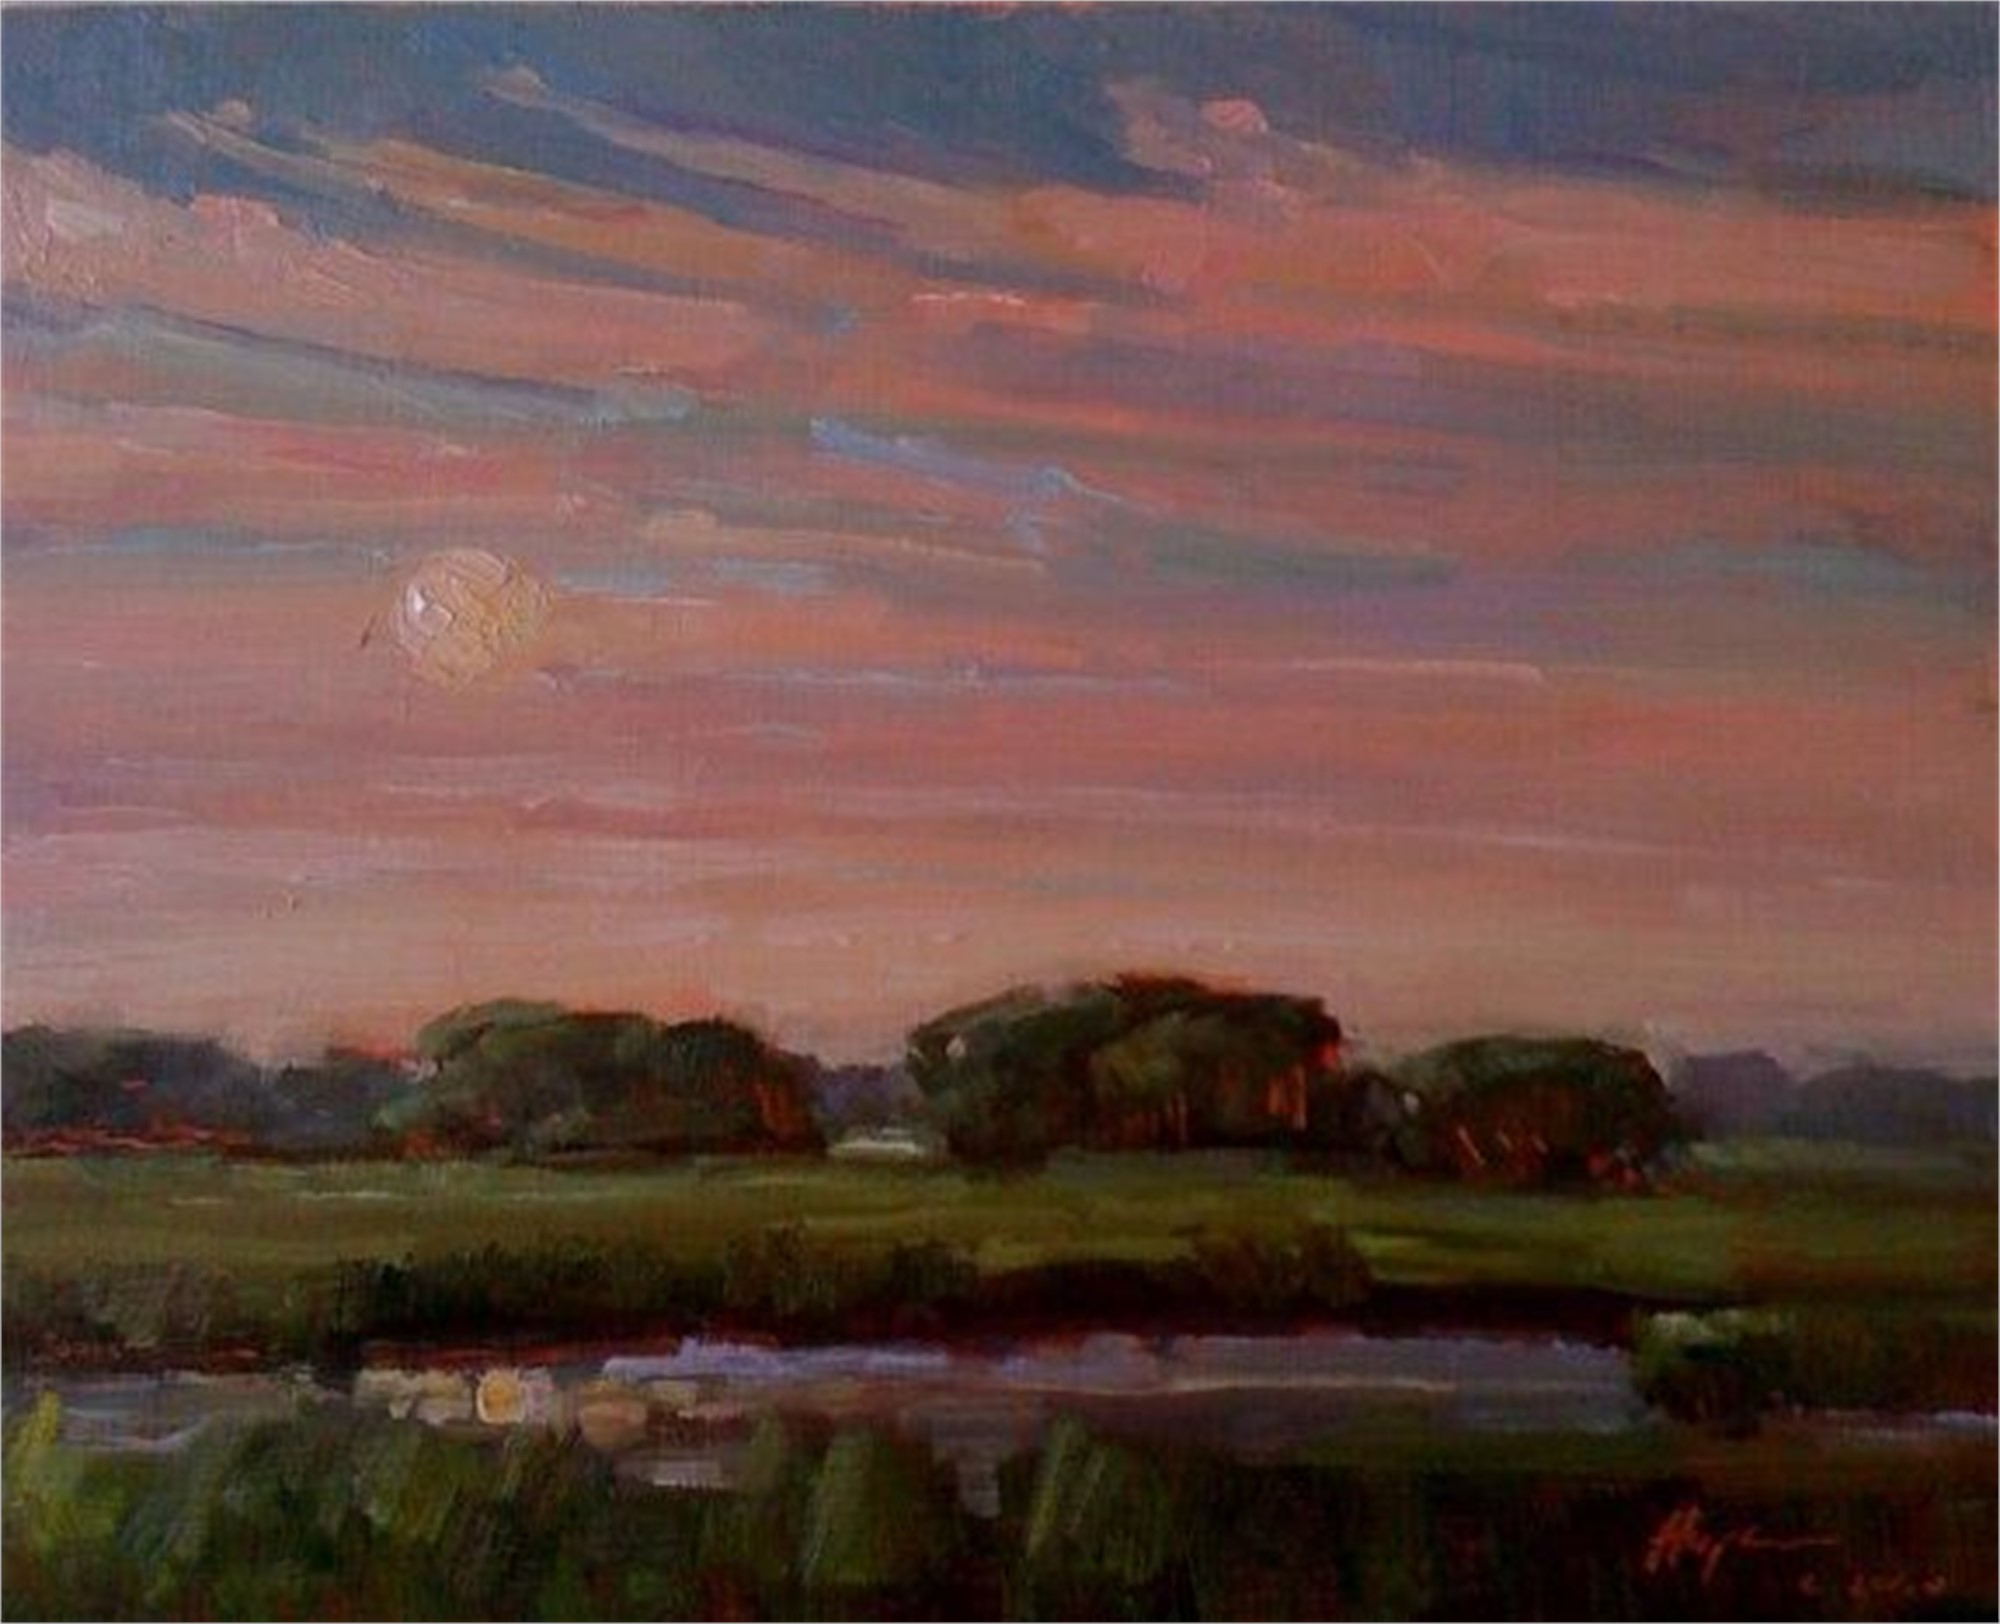 Evening Falls by Karen Hewitt Hagan